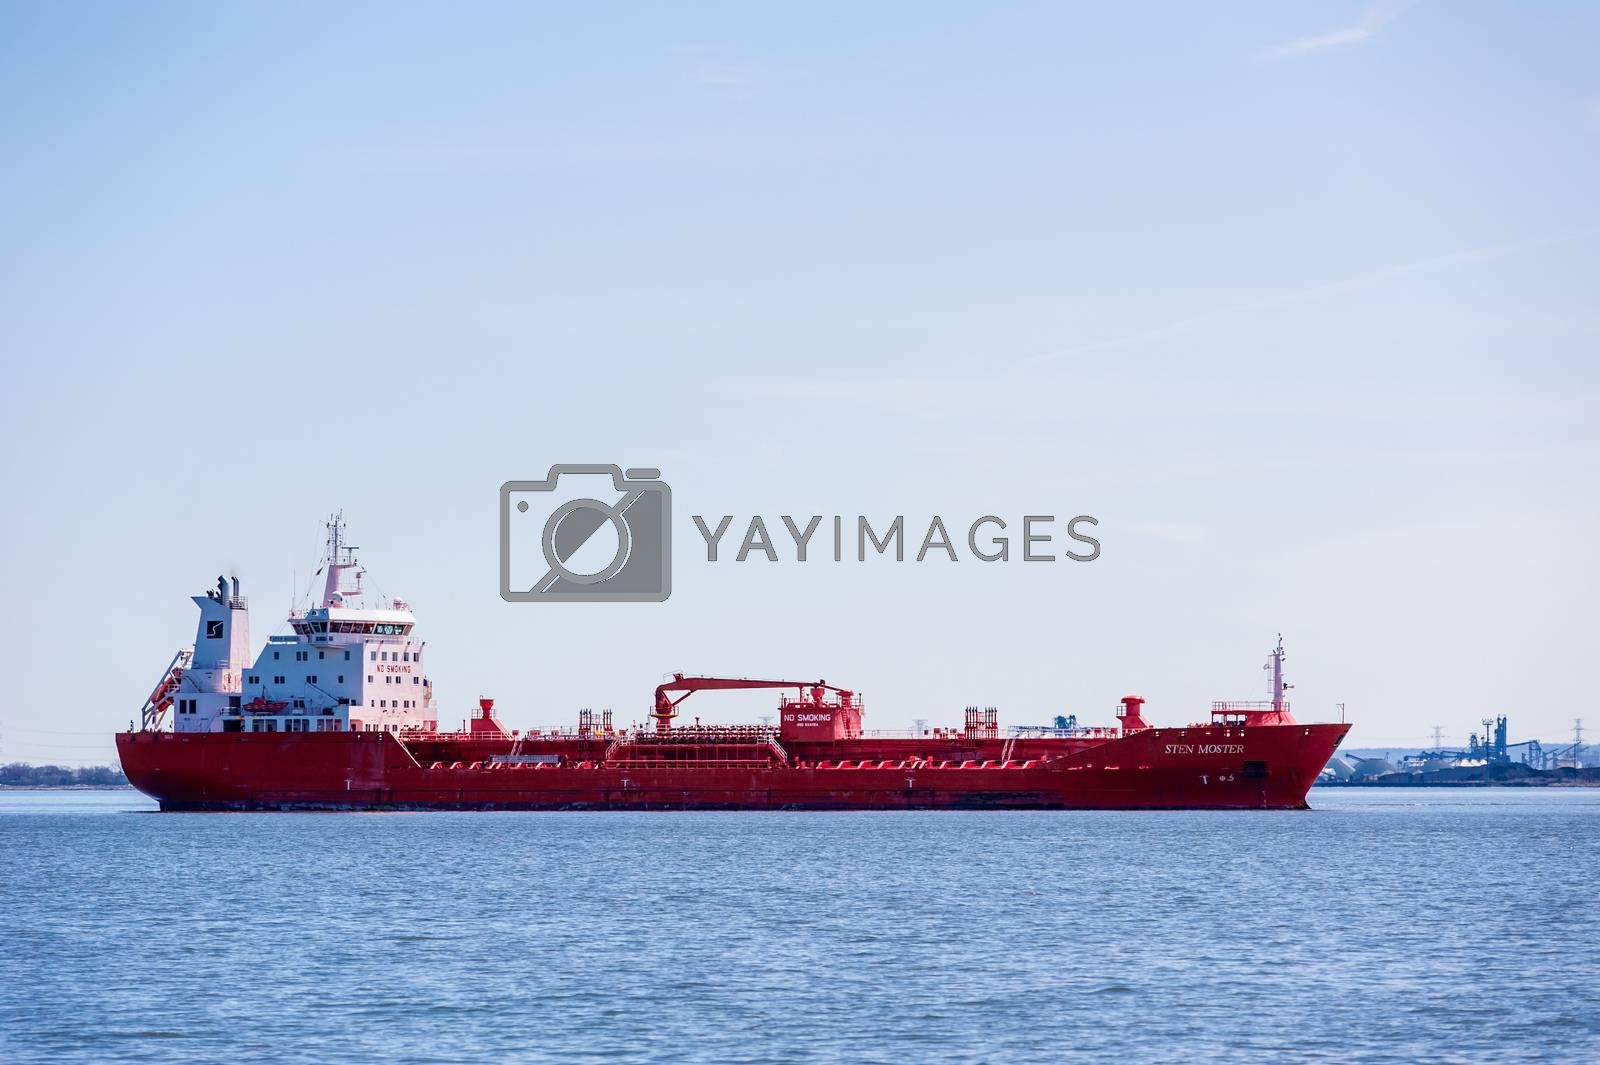 """HAMILTON, ONTARIO, CANADA - APRIL 21, 2018: The oil and chemical tanker """"Sten Moster"""" is at anchor in Hamilton Harbour."""